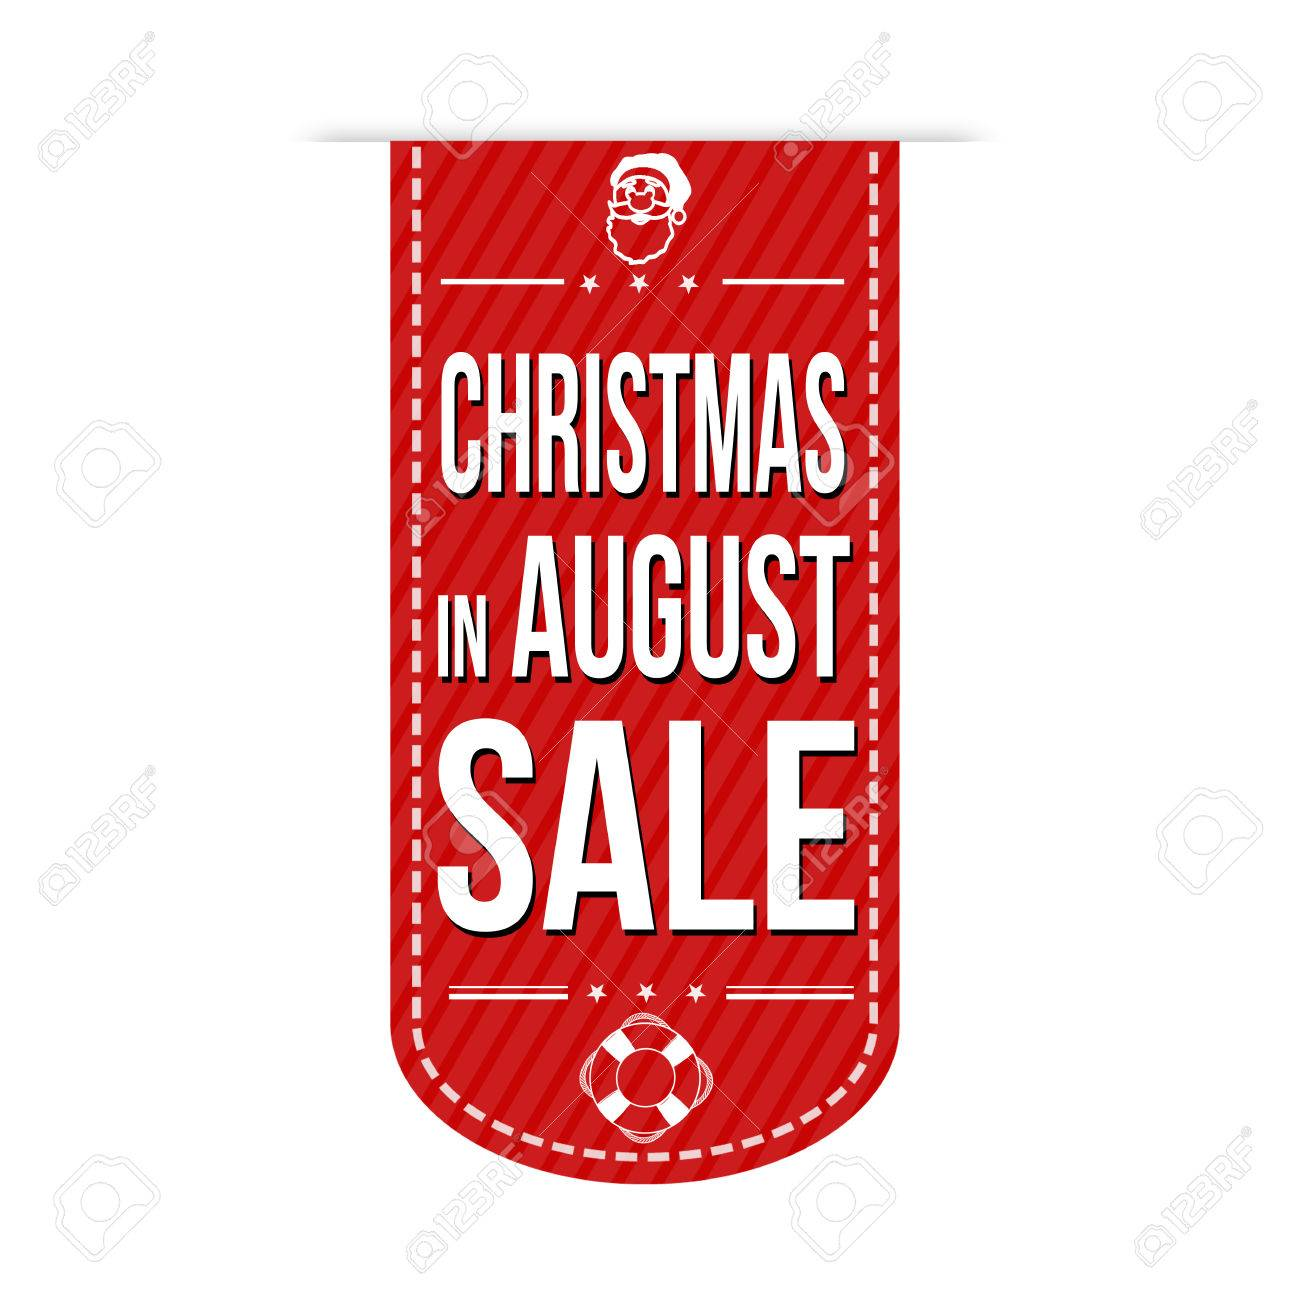 Christmas in august sale banner design over a white background,...